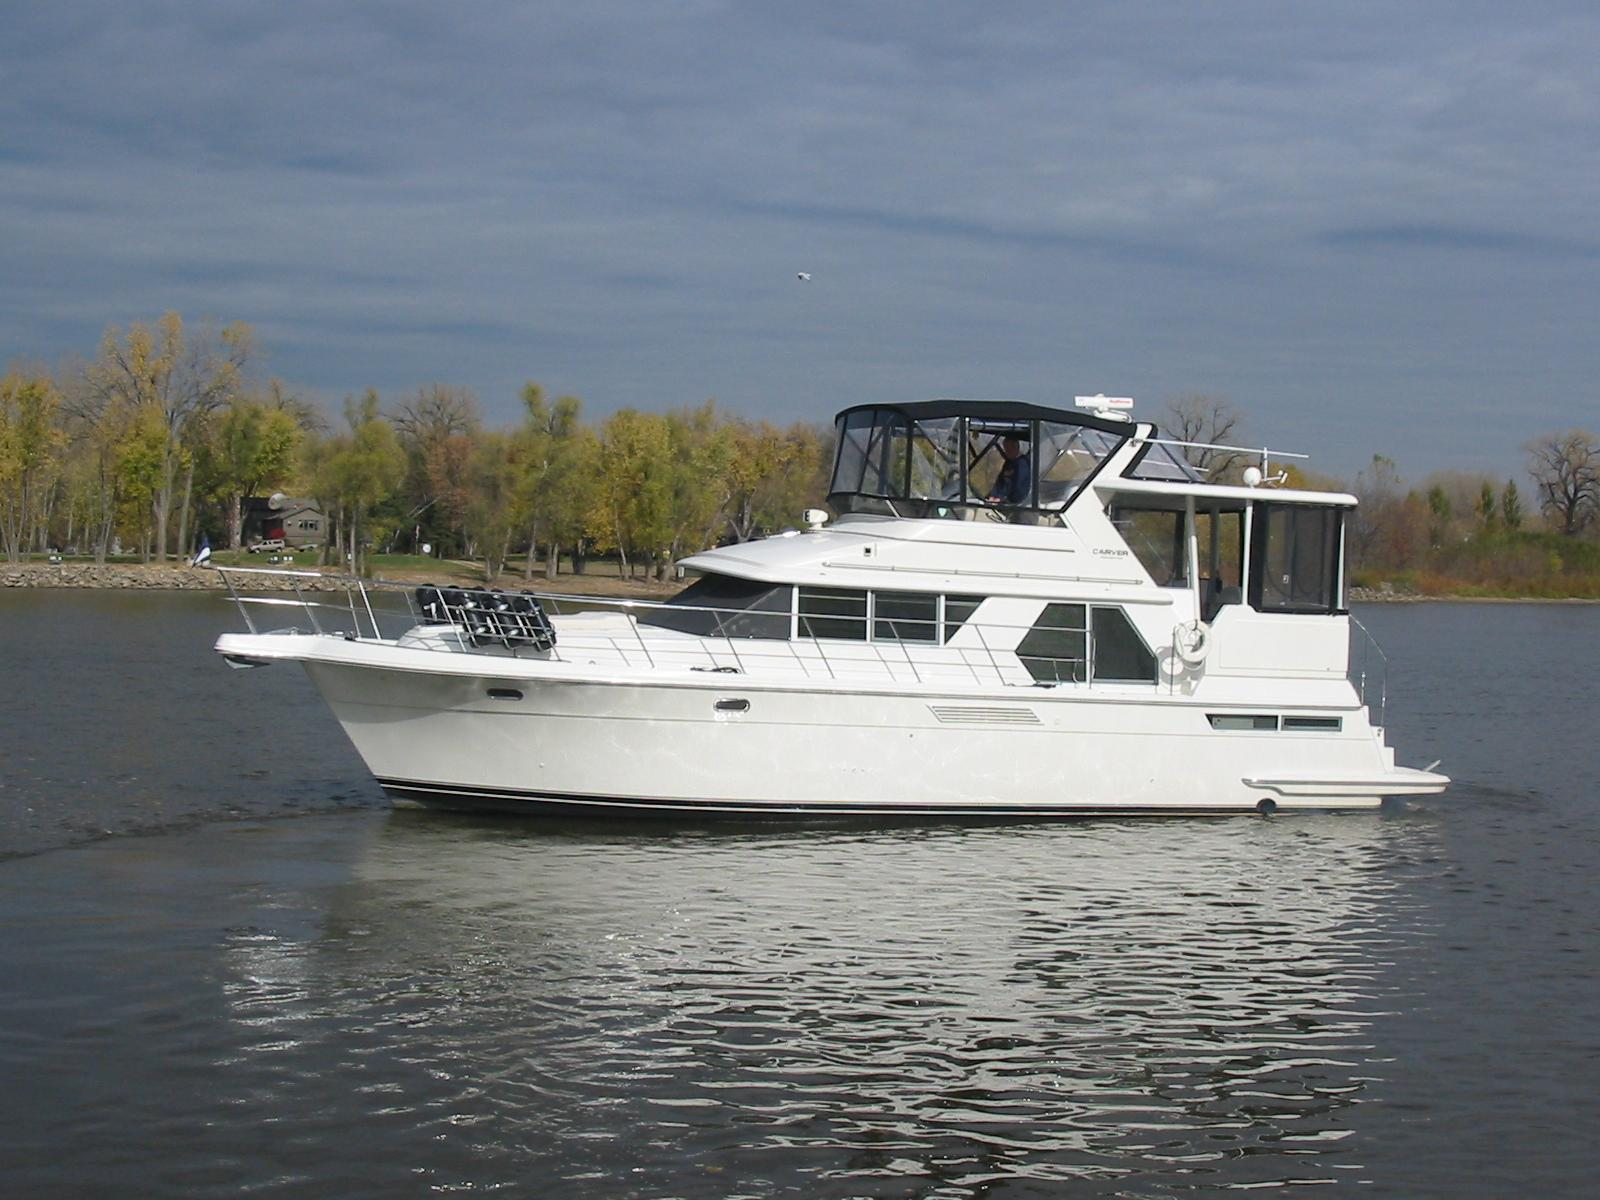 Carver 445 aft cabin motor yacht brick7 boats for Carver aft cabin motor yacht